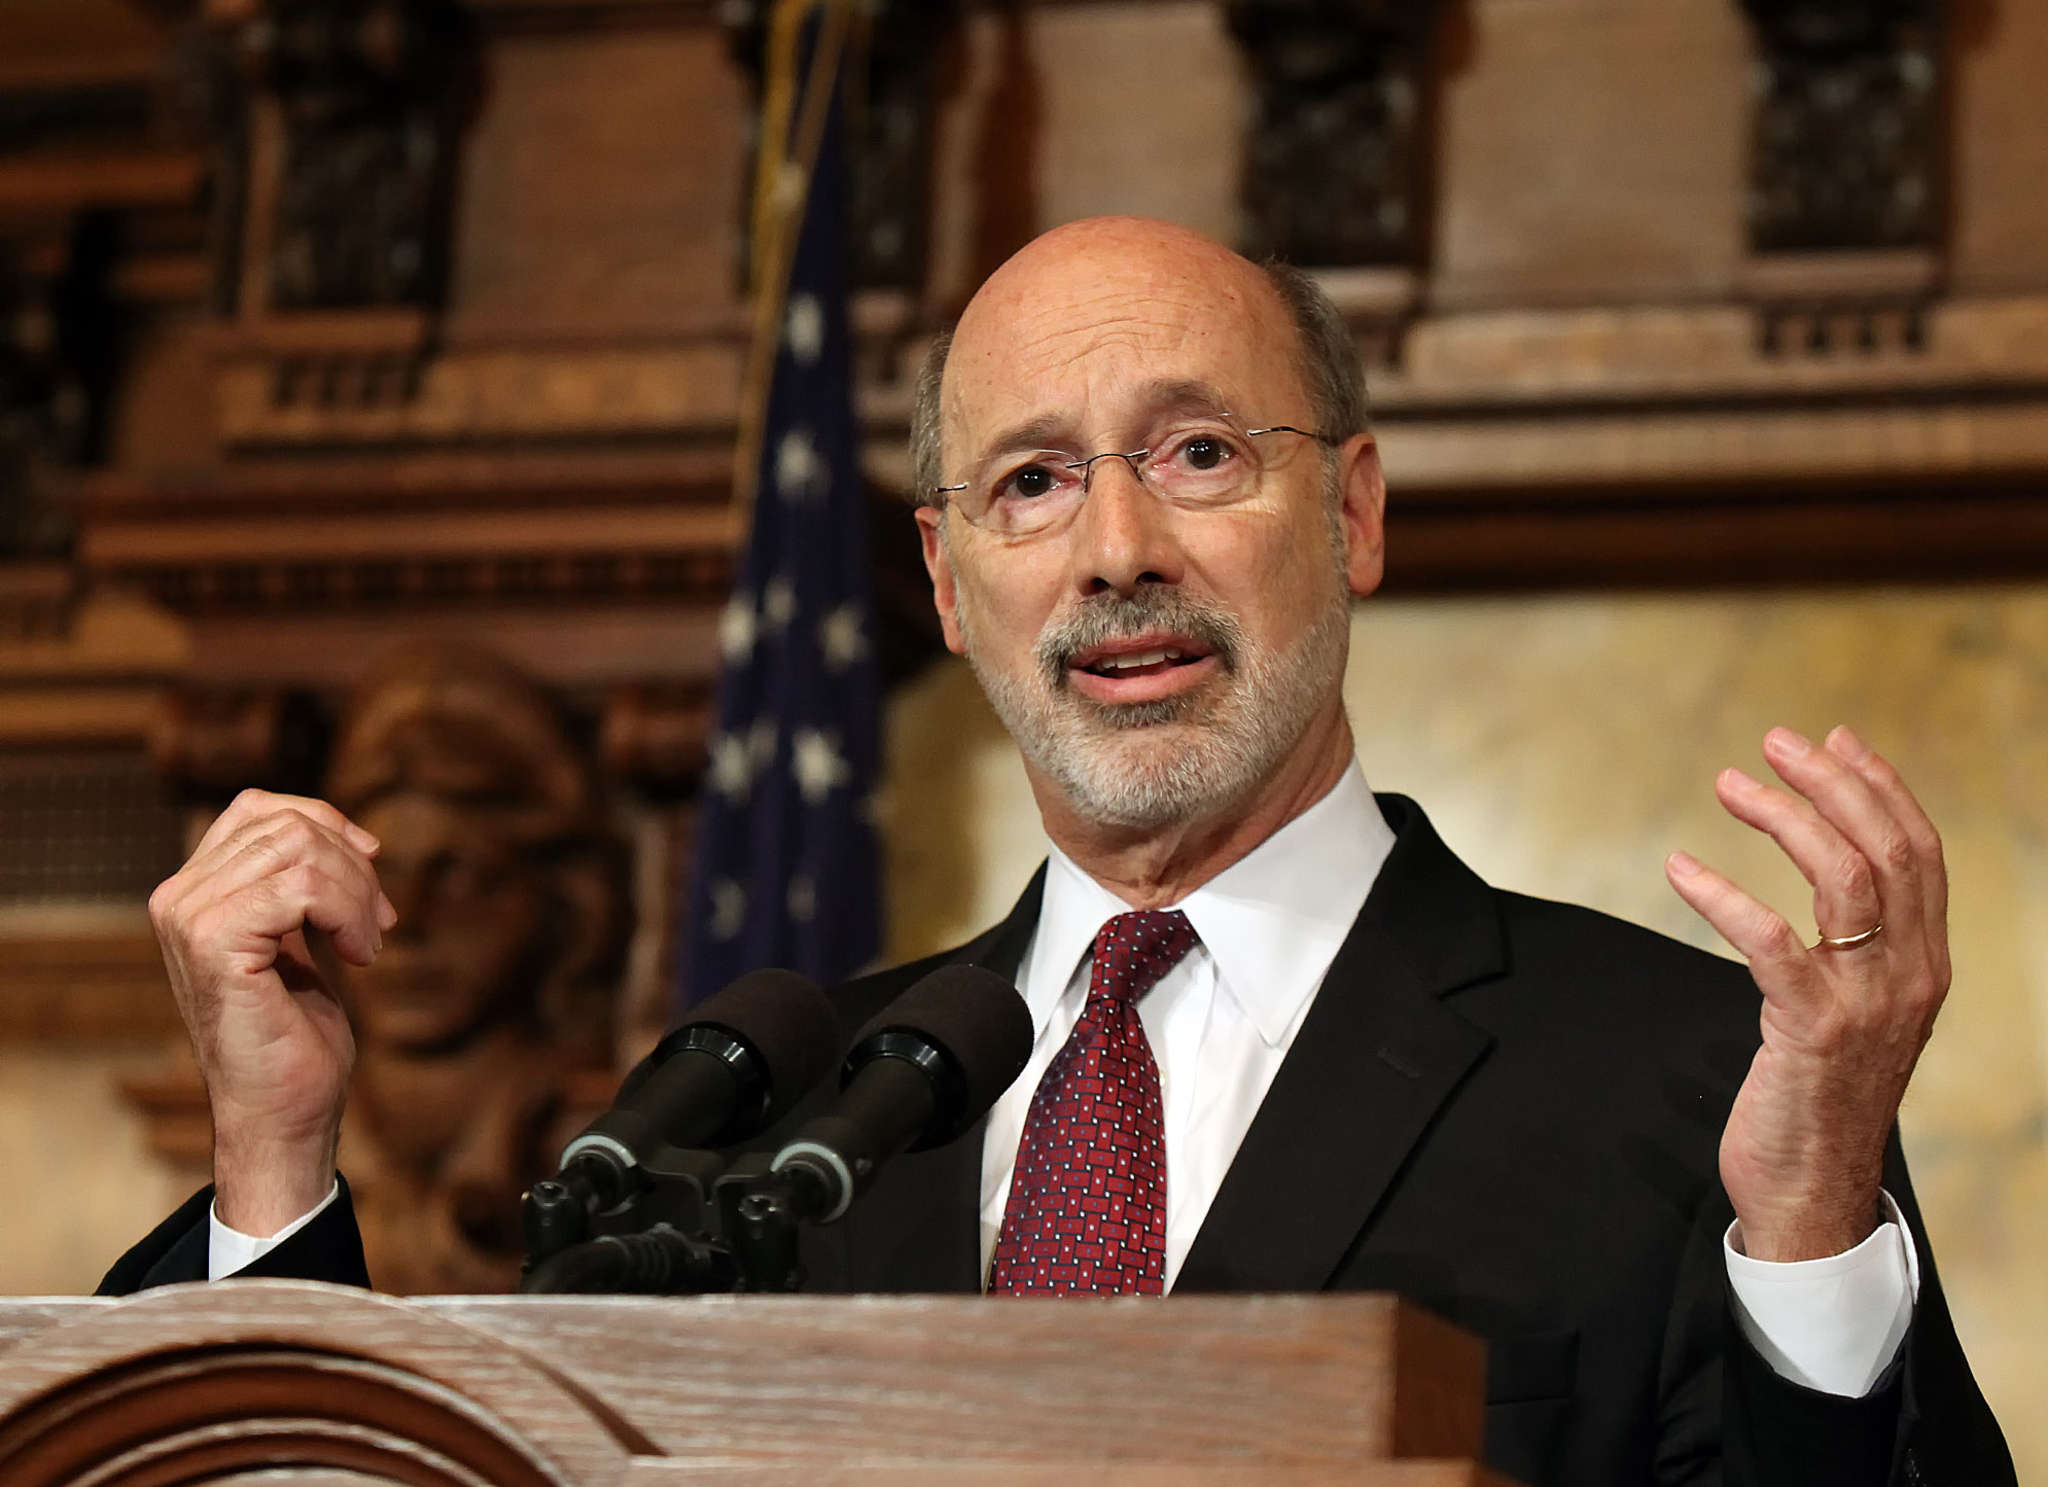 CHRIS KNIGHT / ASSOCIATED PRESS Gov. Wolf has two choices for the state´s budget: finalize it or open up another protracted debate.